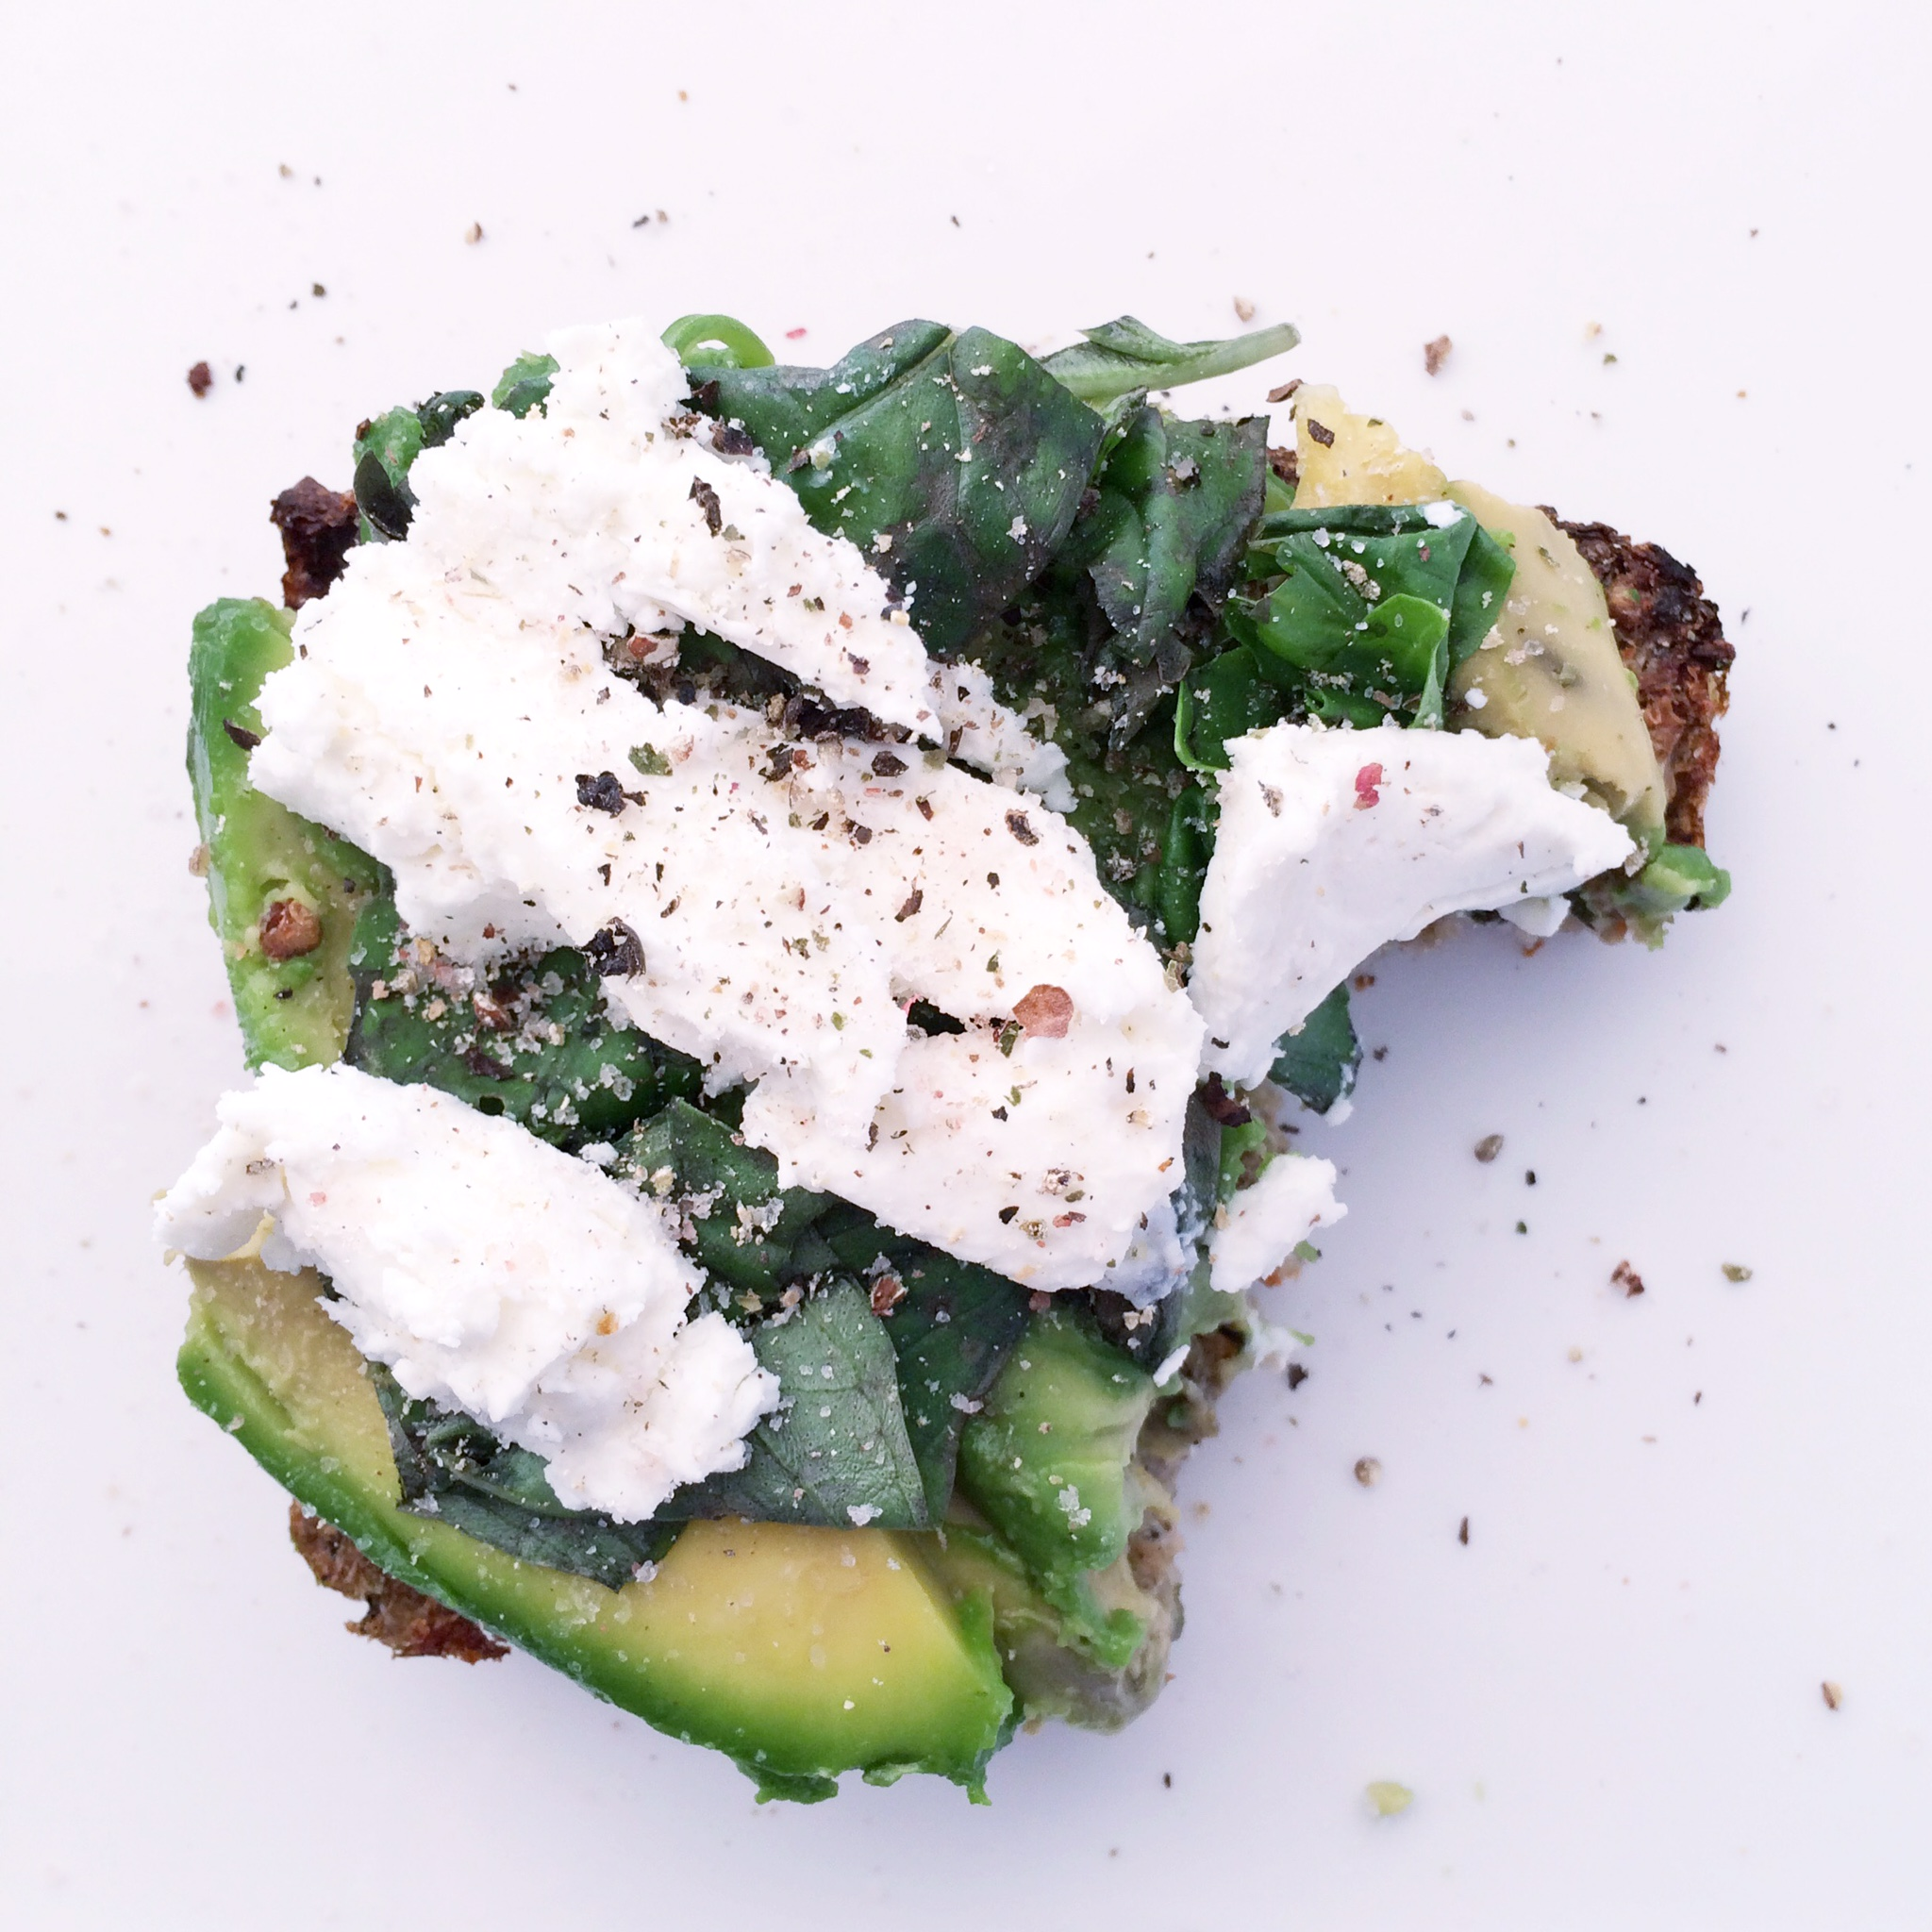 Fresh basil leaves, soft chèvre goat's cheese, pink Himalayan salt and crushed black pepper.